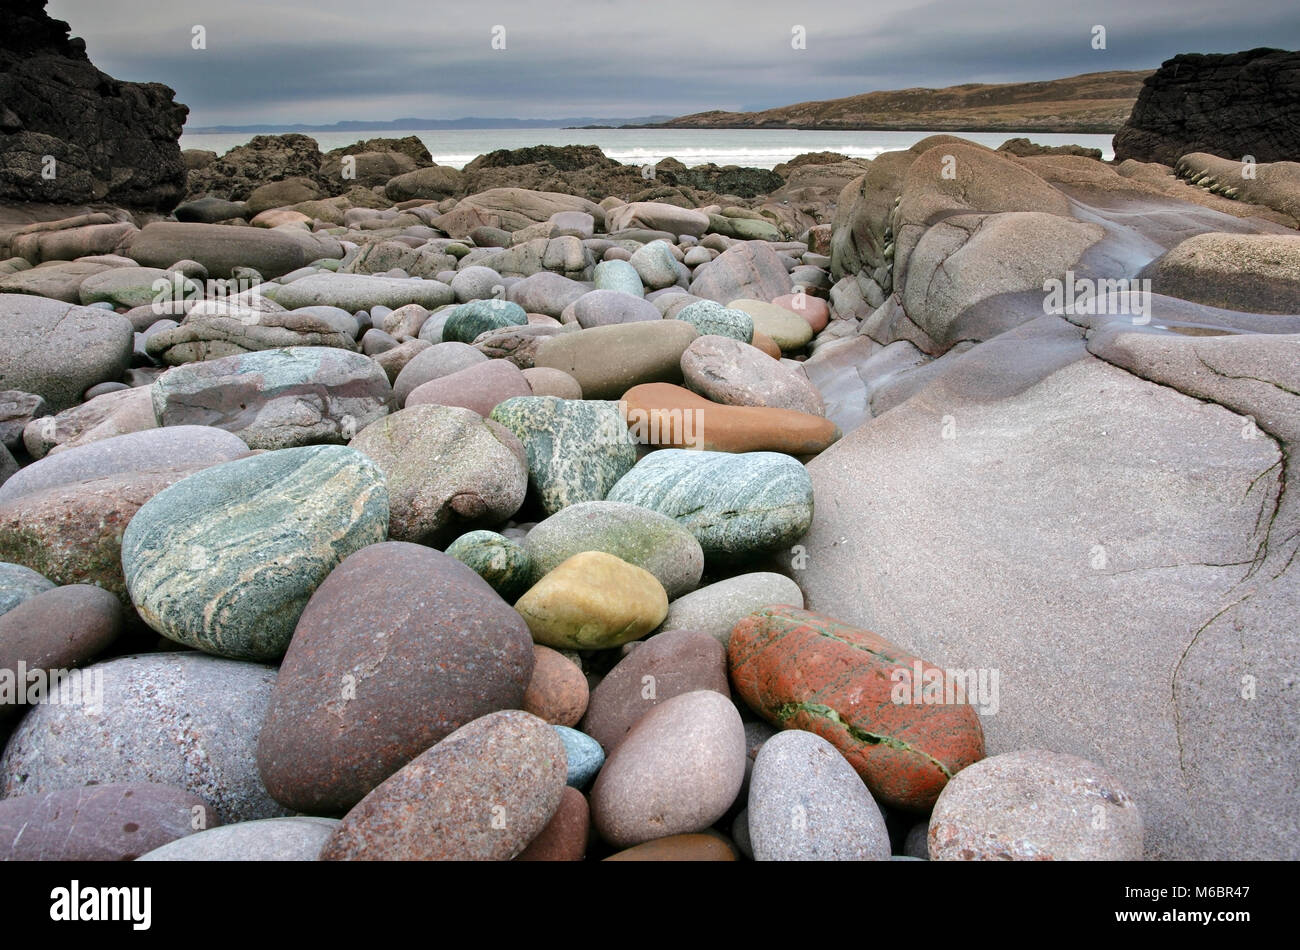 A view of the colorful rocks of Achnahaird Bay on the west coast of Scotland. - Stock Image